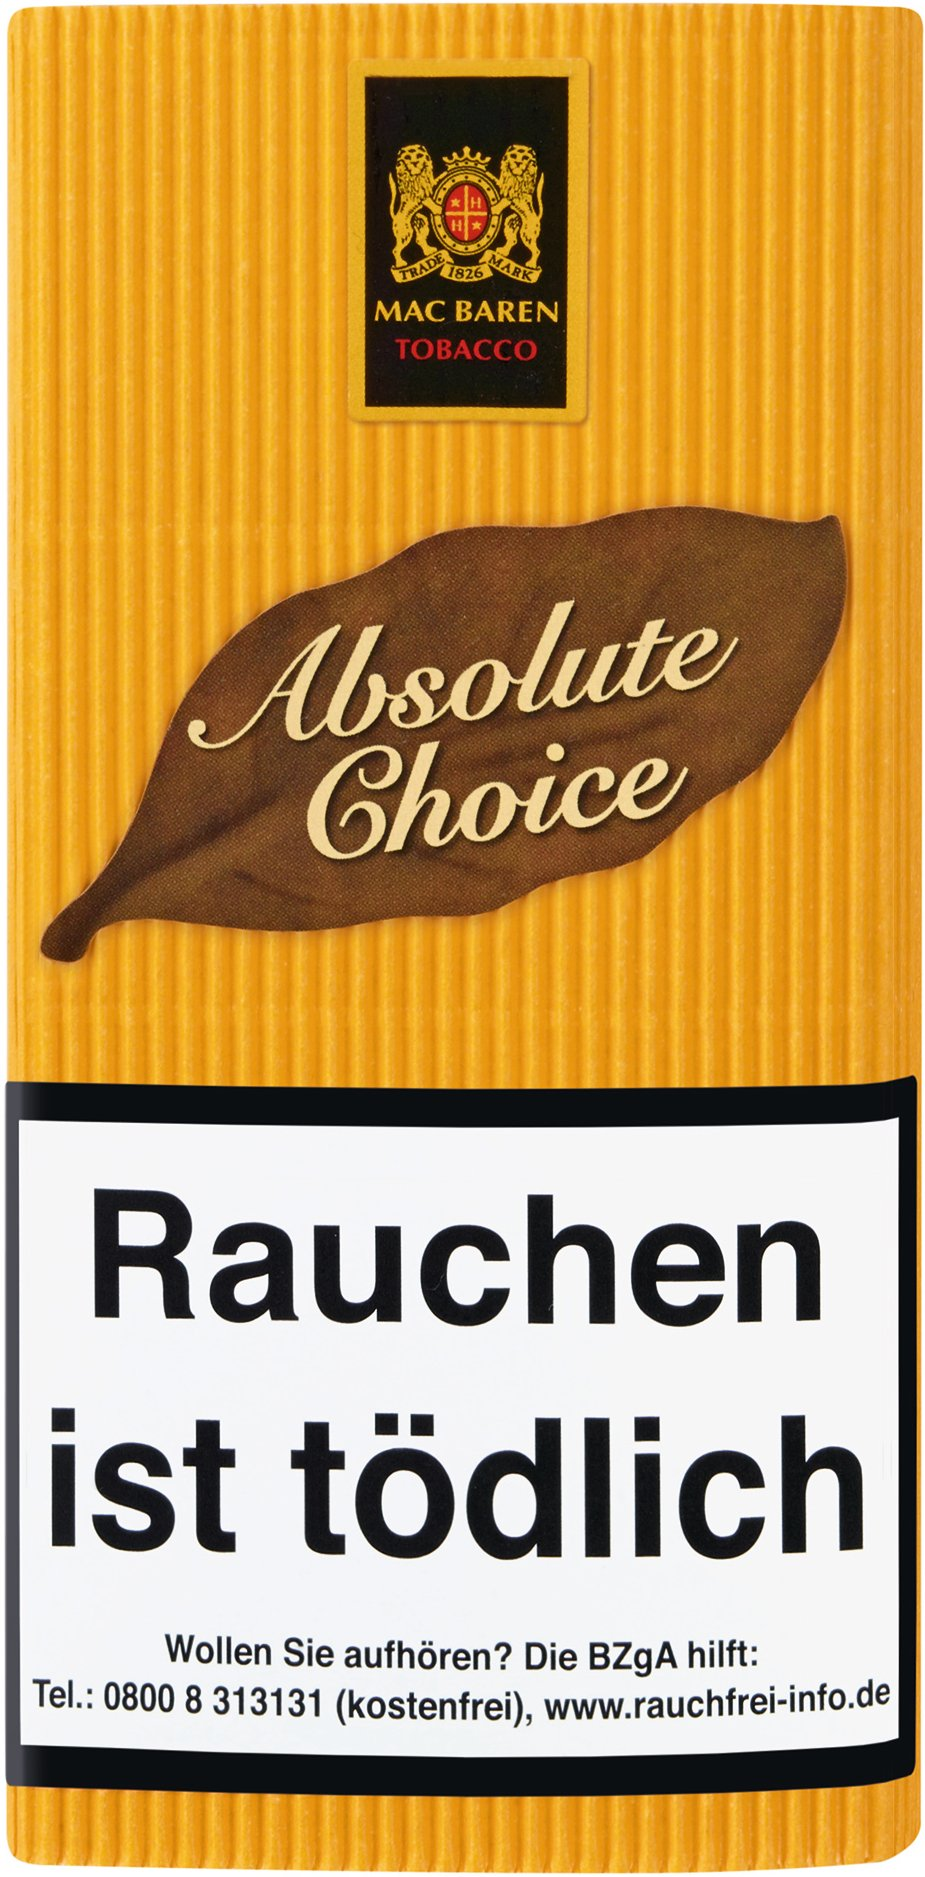 Mac Baren Choice Absolute Choice (ehemals Aromatic Choice) Pouch 40g